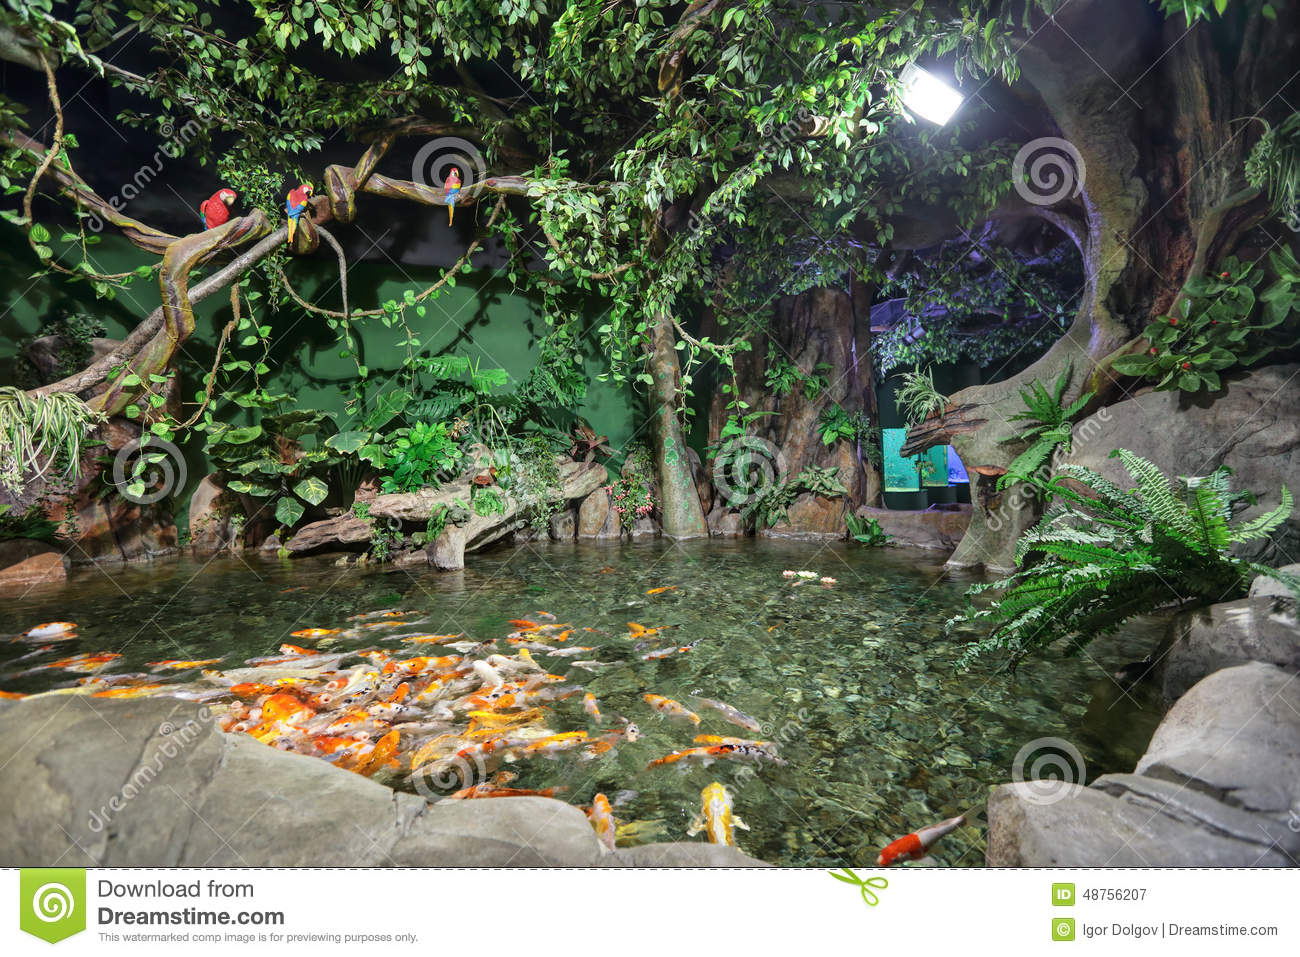 Adler Russia  city photos gallery : ... adler russia mar one main attractions adler largest russia koi